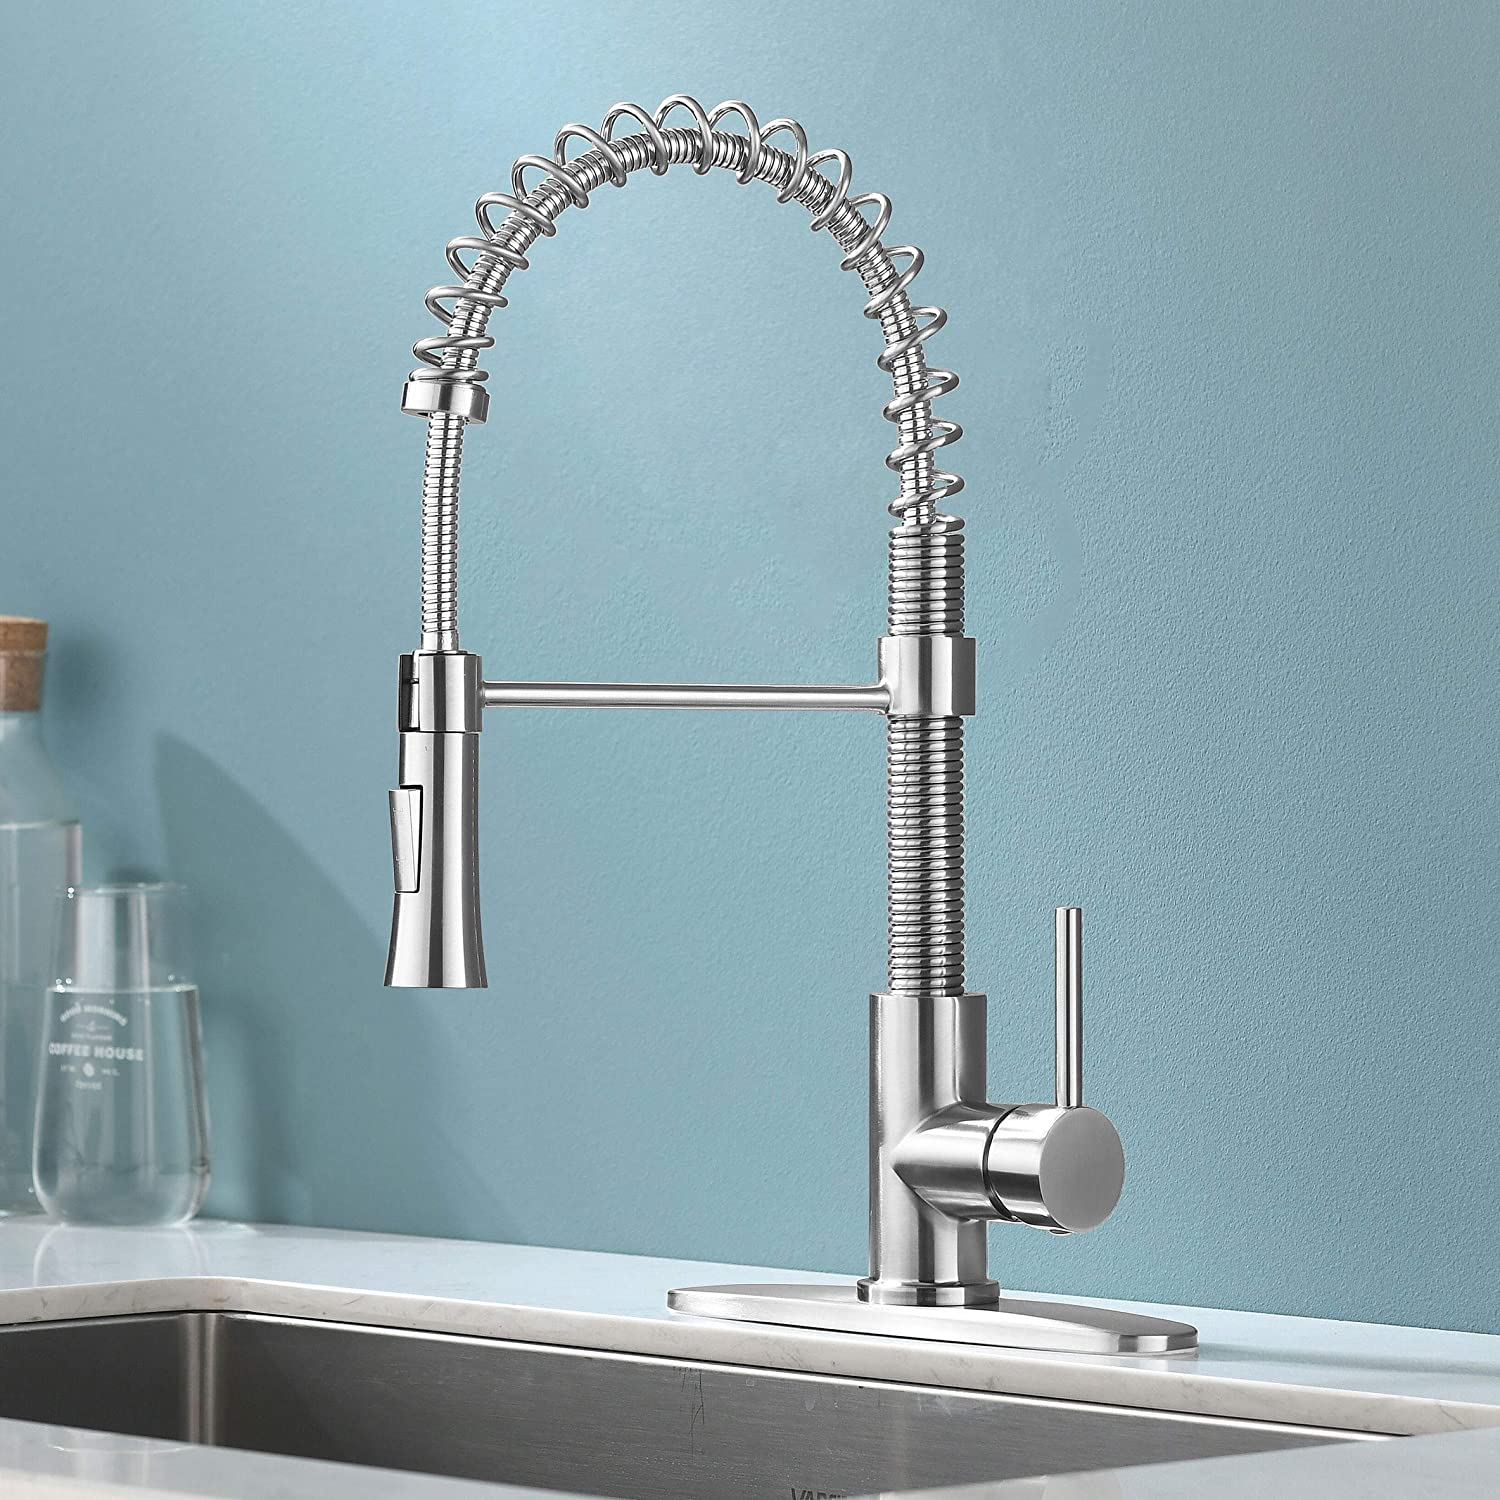 KINGO HOME Lead-Free Kitchen Faucet